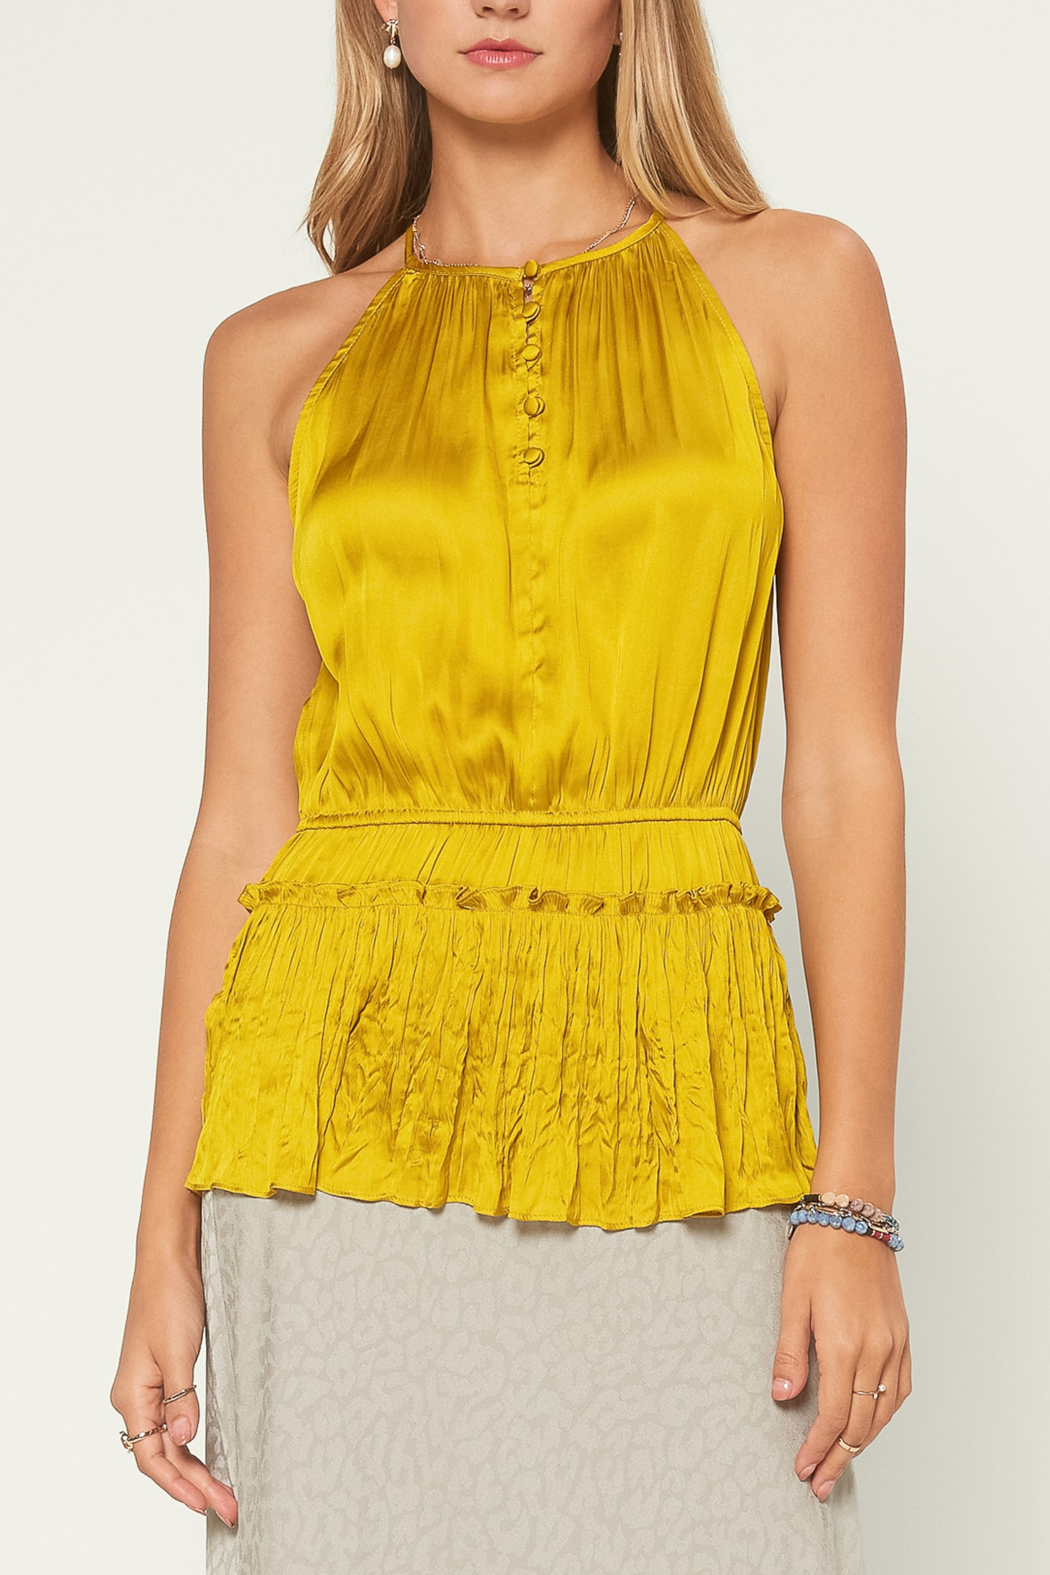 Current Air  Halter Neck Blouse - Main Image